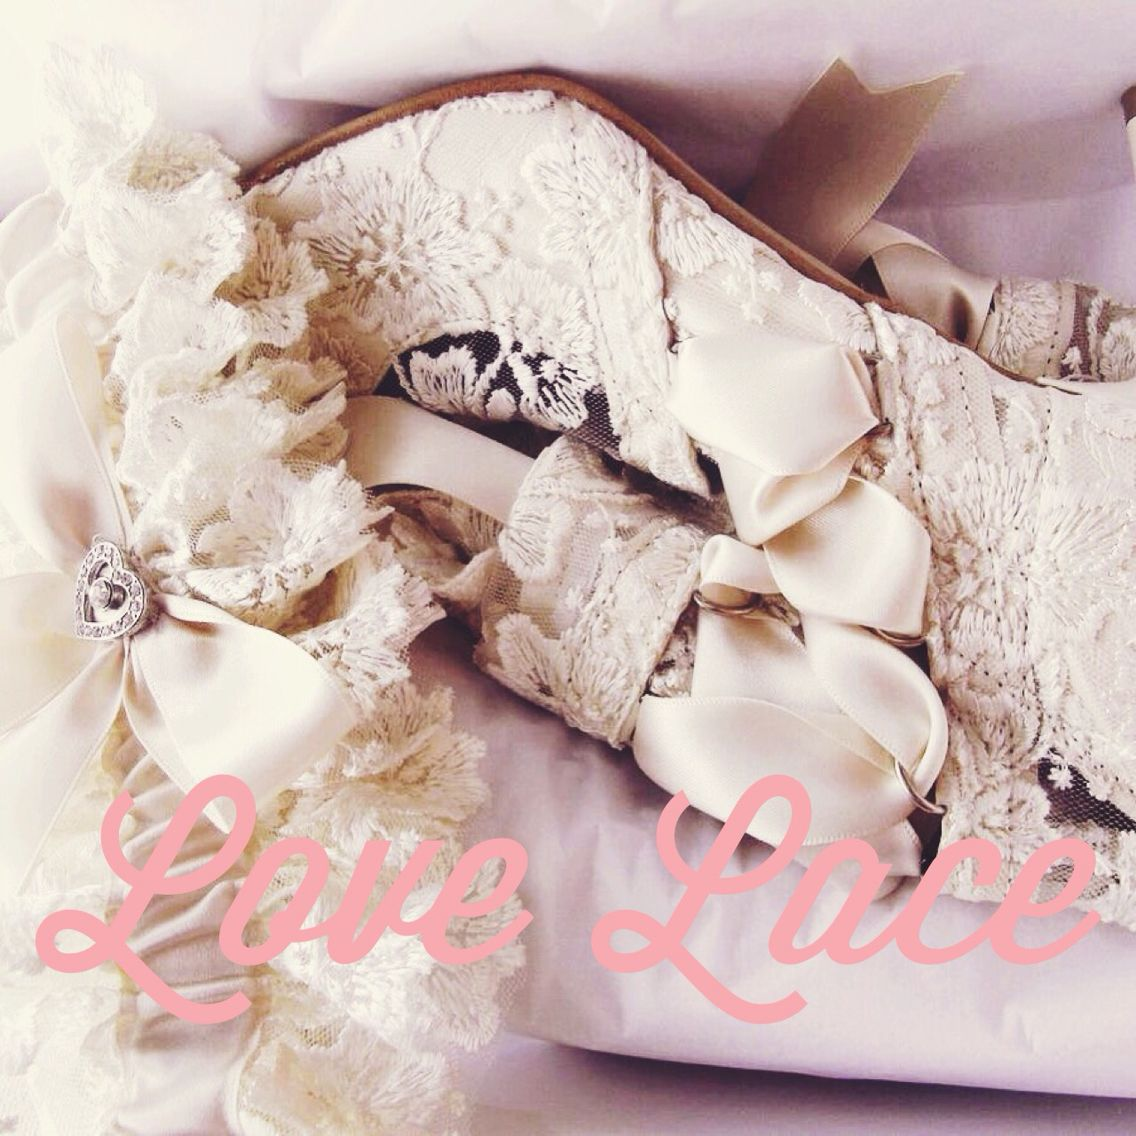 We love lace here at House Elliot. Do you?  Our beautiful hand made lace wedding boots and couture lace garters are available at www.houseofelliotcollection.com  #lace #laceshoes #vintageweddingshoes